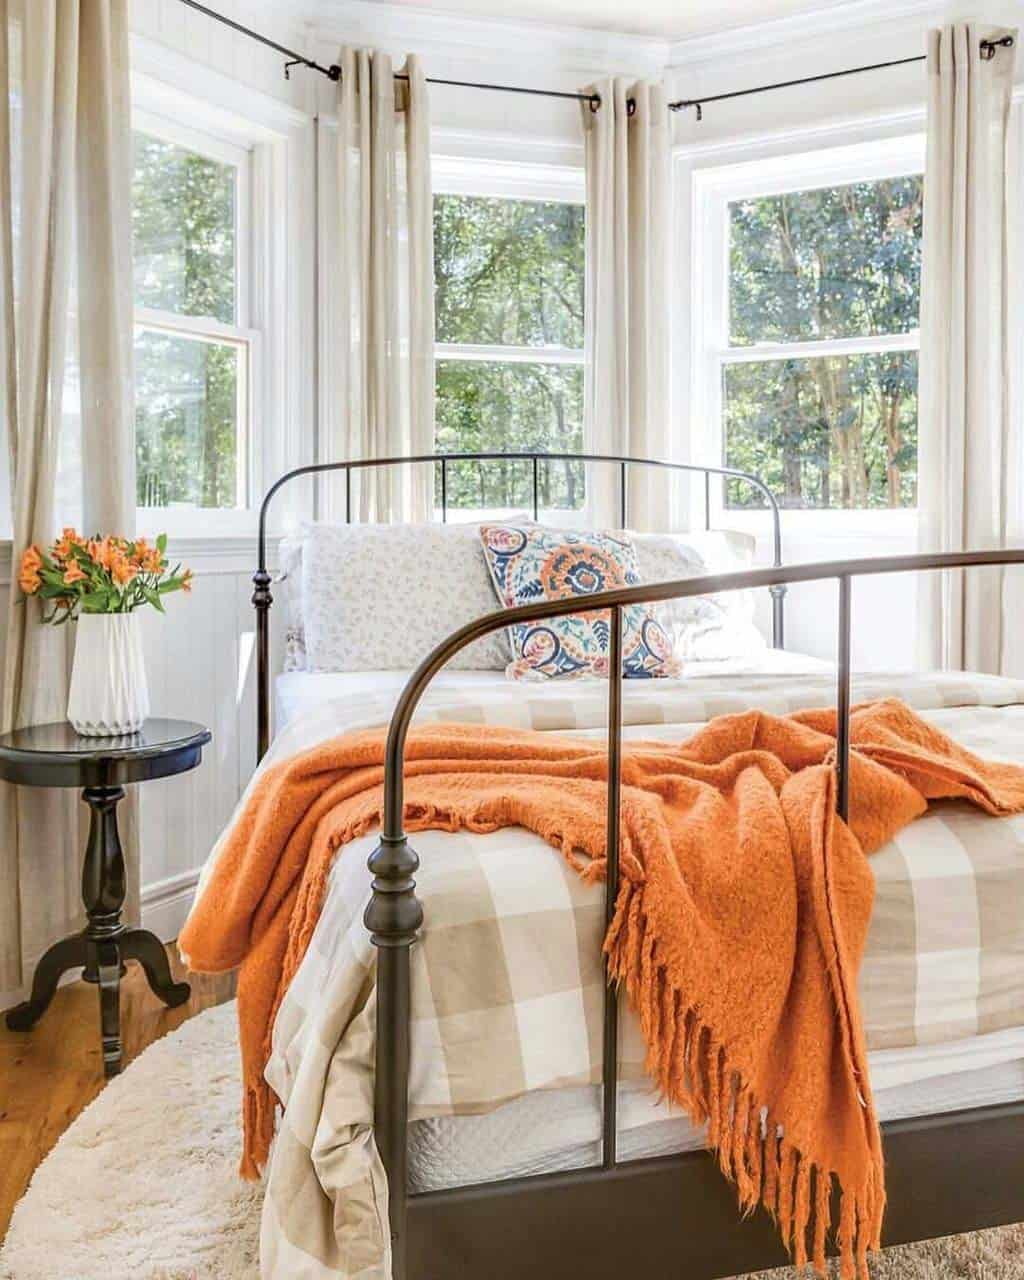 Bedroom-Decorating-Ideas-For-Autumn-23-1-Kindesign